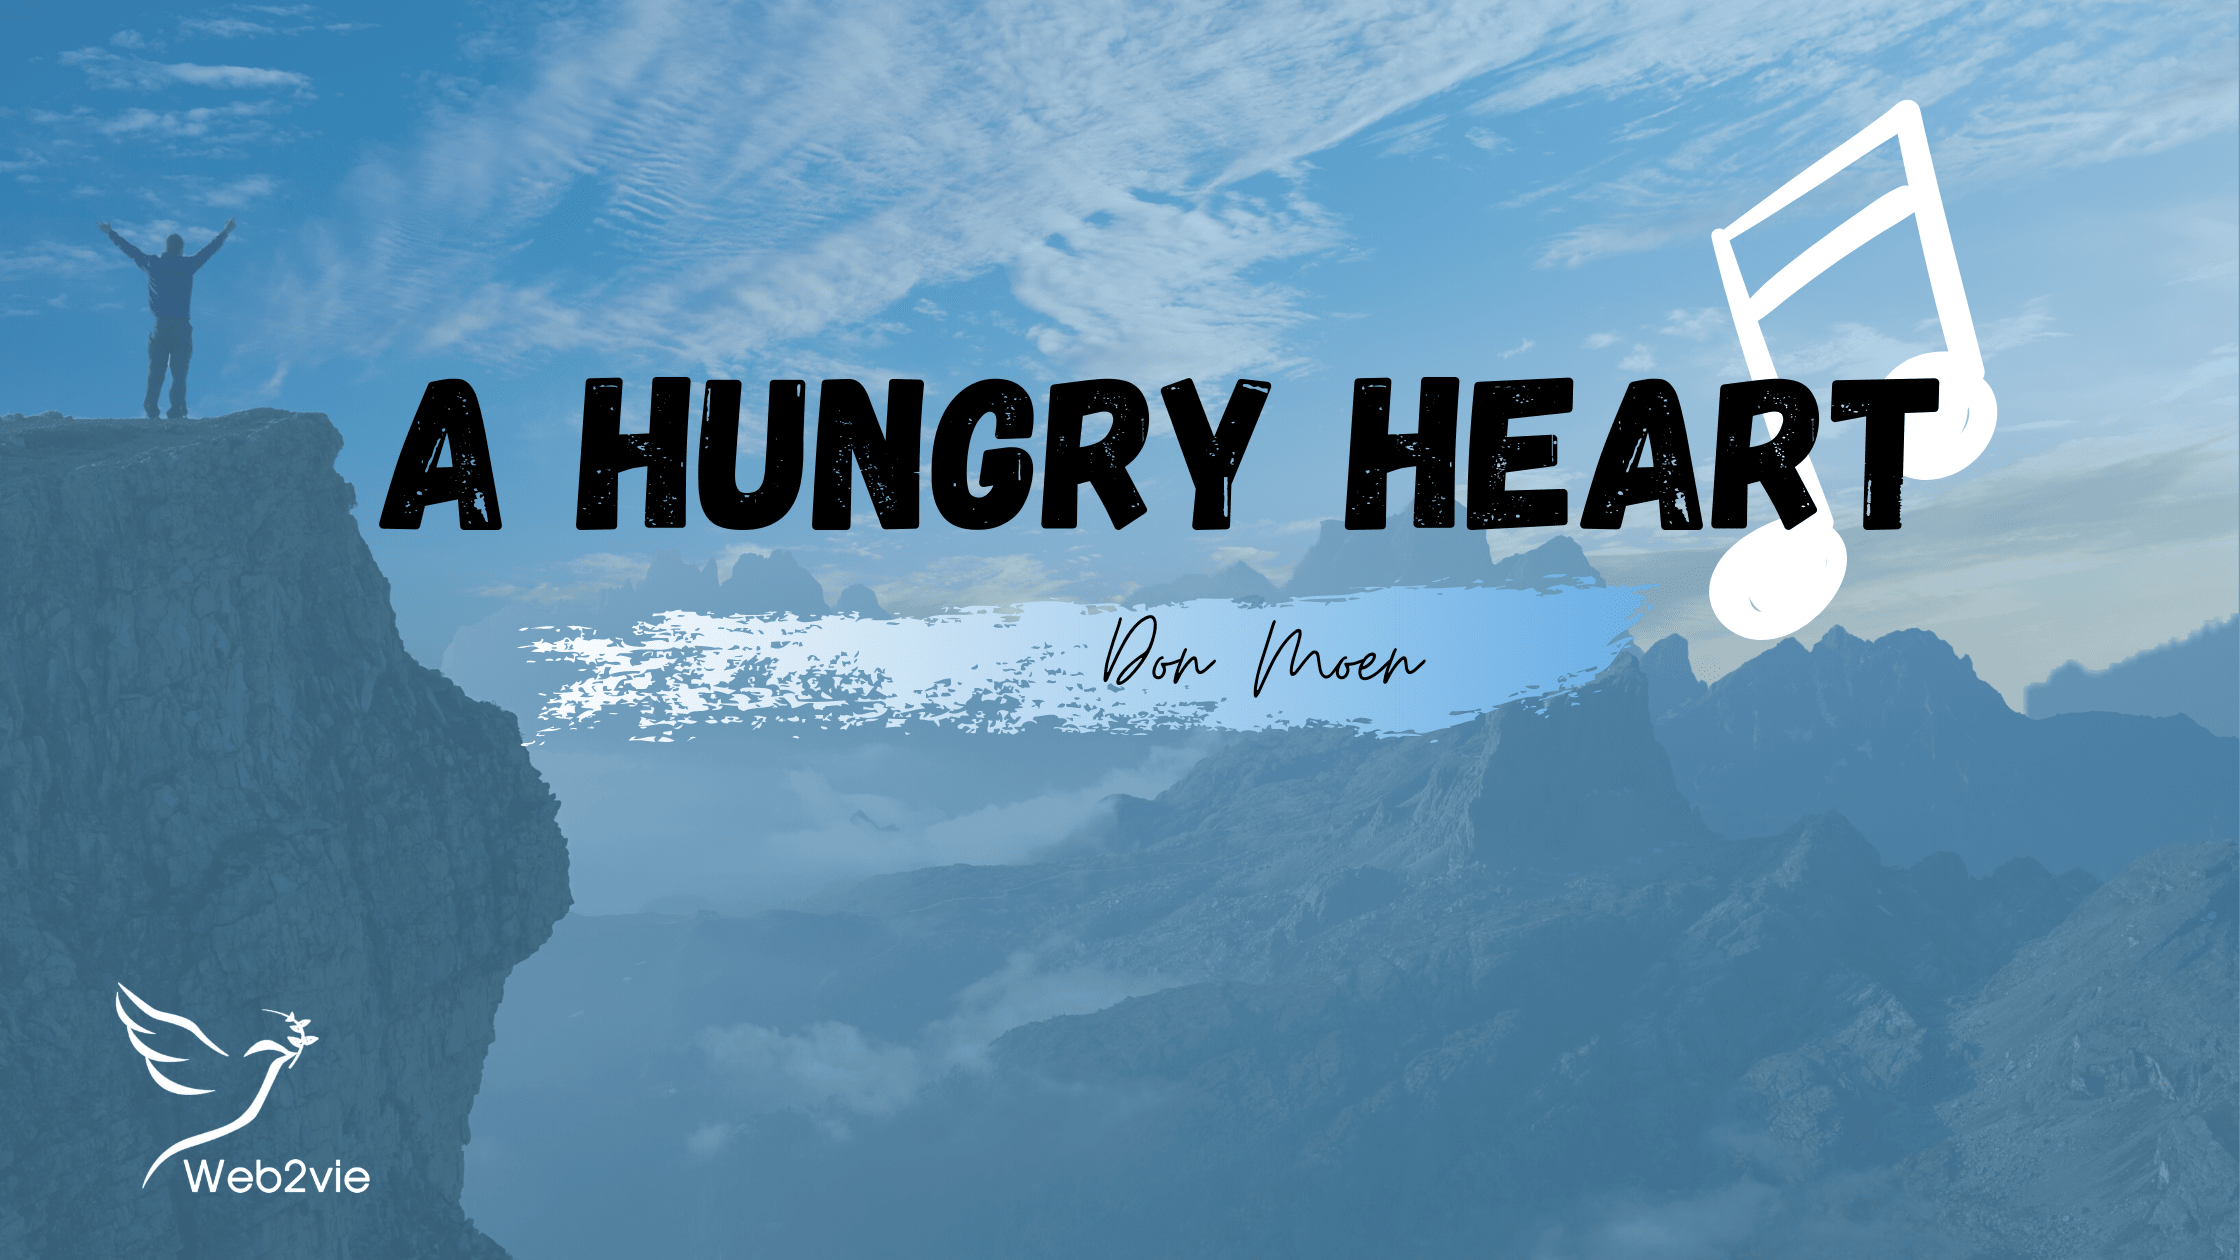 A Hungry Heart - Don Moen